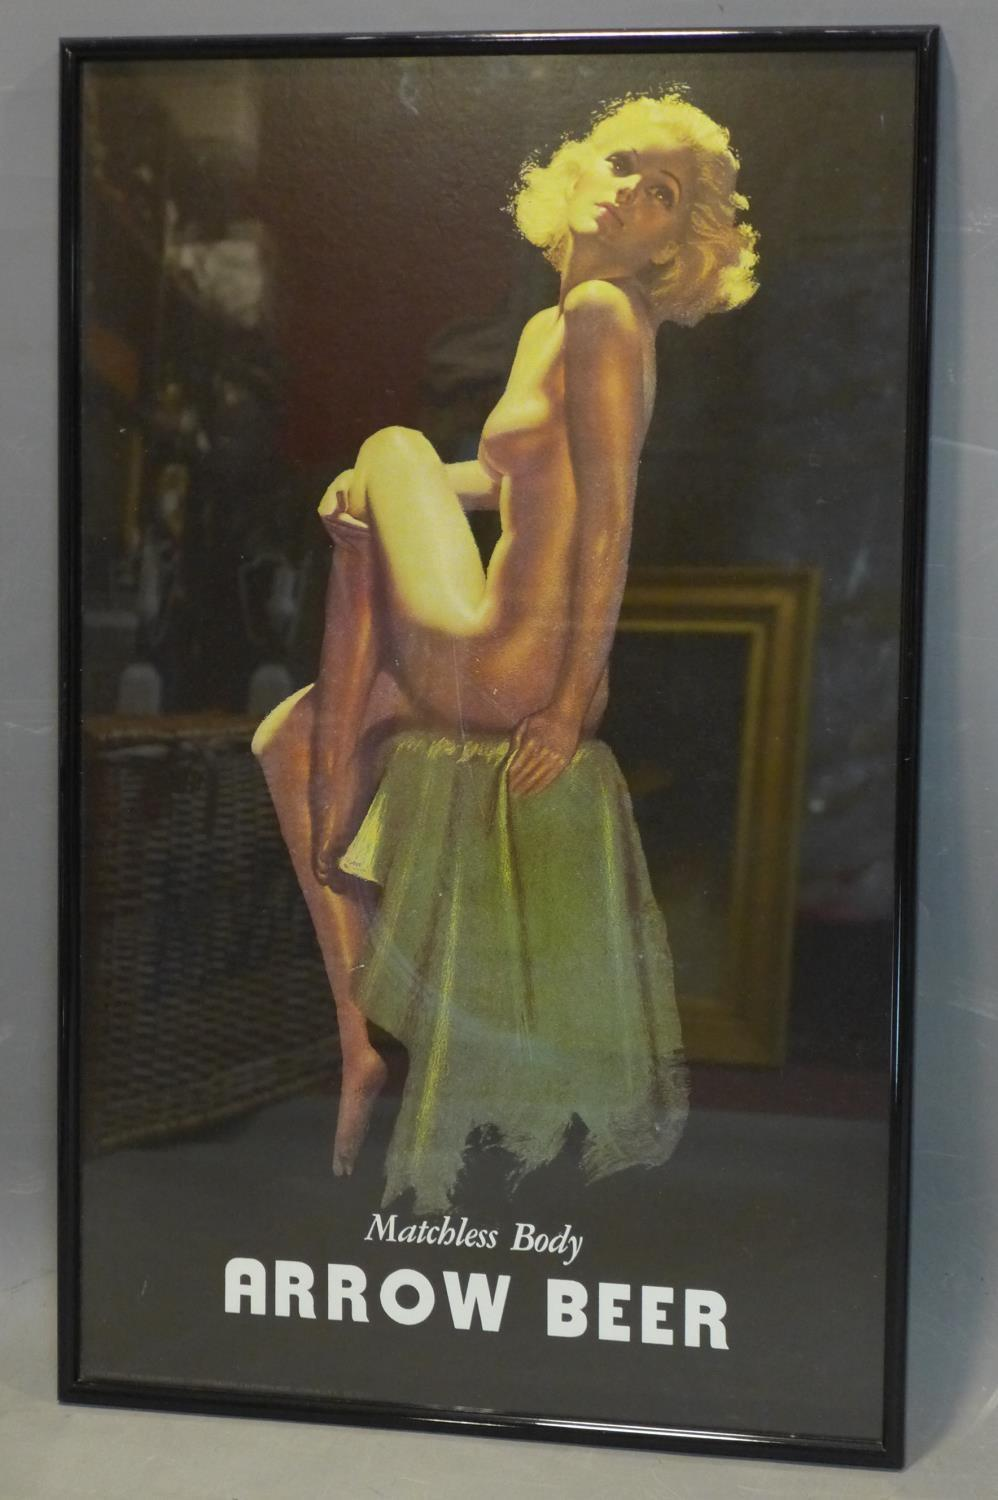 Lot 287 - A rare reproduction of Arrow Beer's vintage 'Matchless Body' advertising campaign by pin-up artist